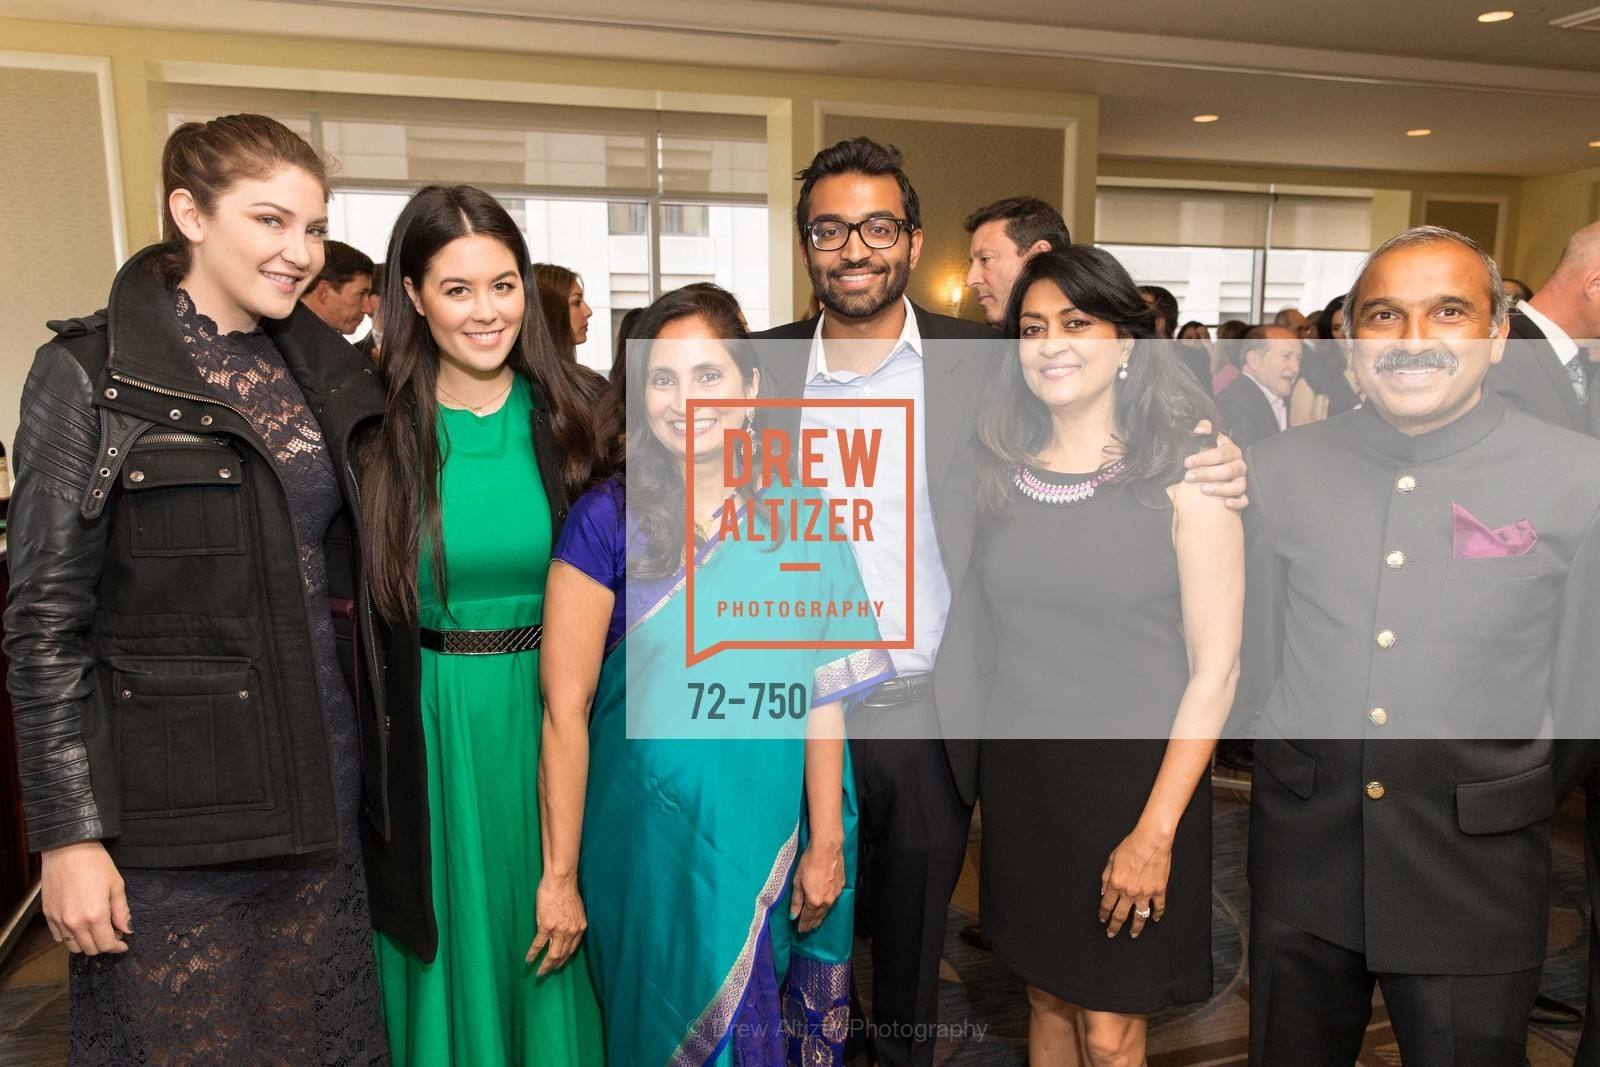 Melody McCloskey, Michelle Dong, Padmasree Warrior, Rohan Shah, Lata Krishnan, Mohan Warrier, WORLD AFFAIRS COUNCIL Awards Dinner, US, May 27th, 2015,Drew Altizer, Drew Altizer Photography, full-service event agency, private events, San Francisco photographer, photographer California